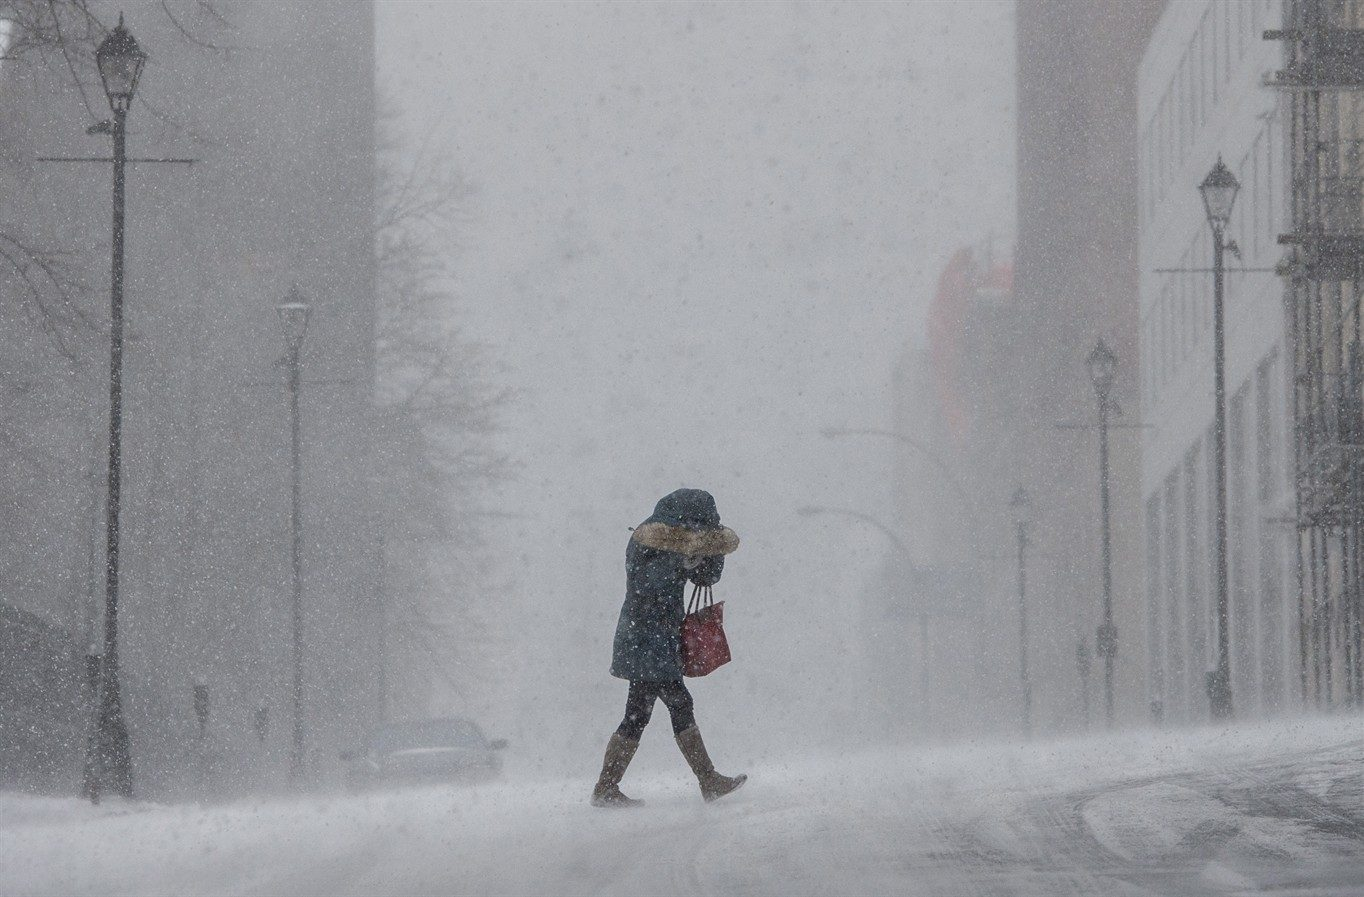 Snow squall watch in effect